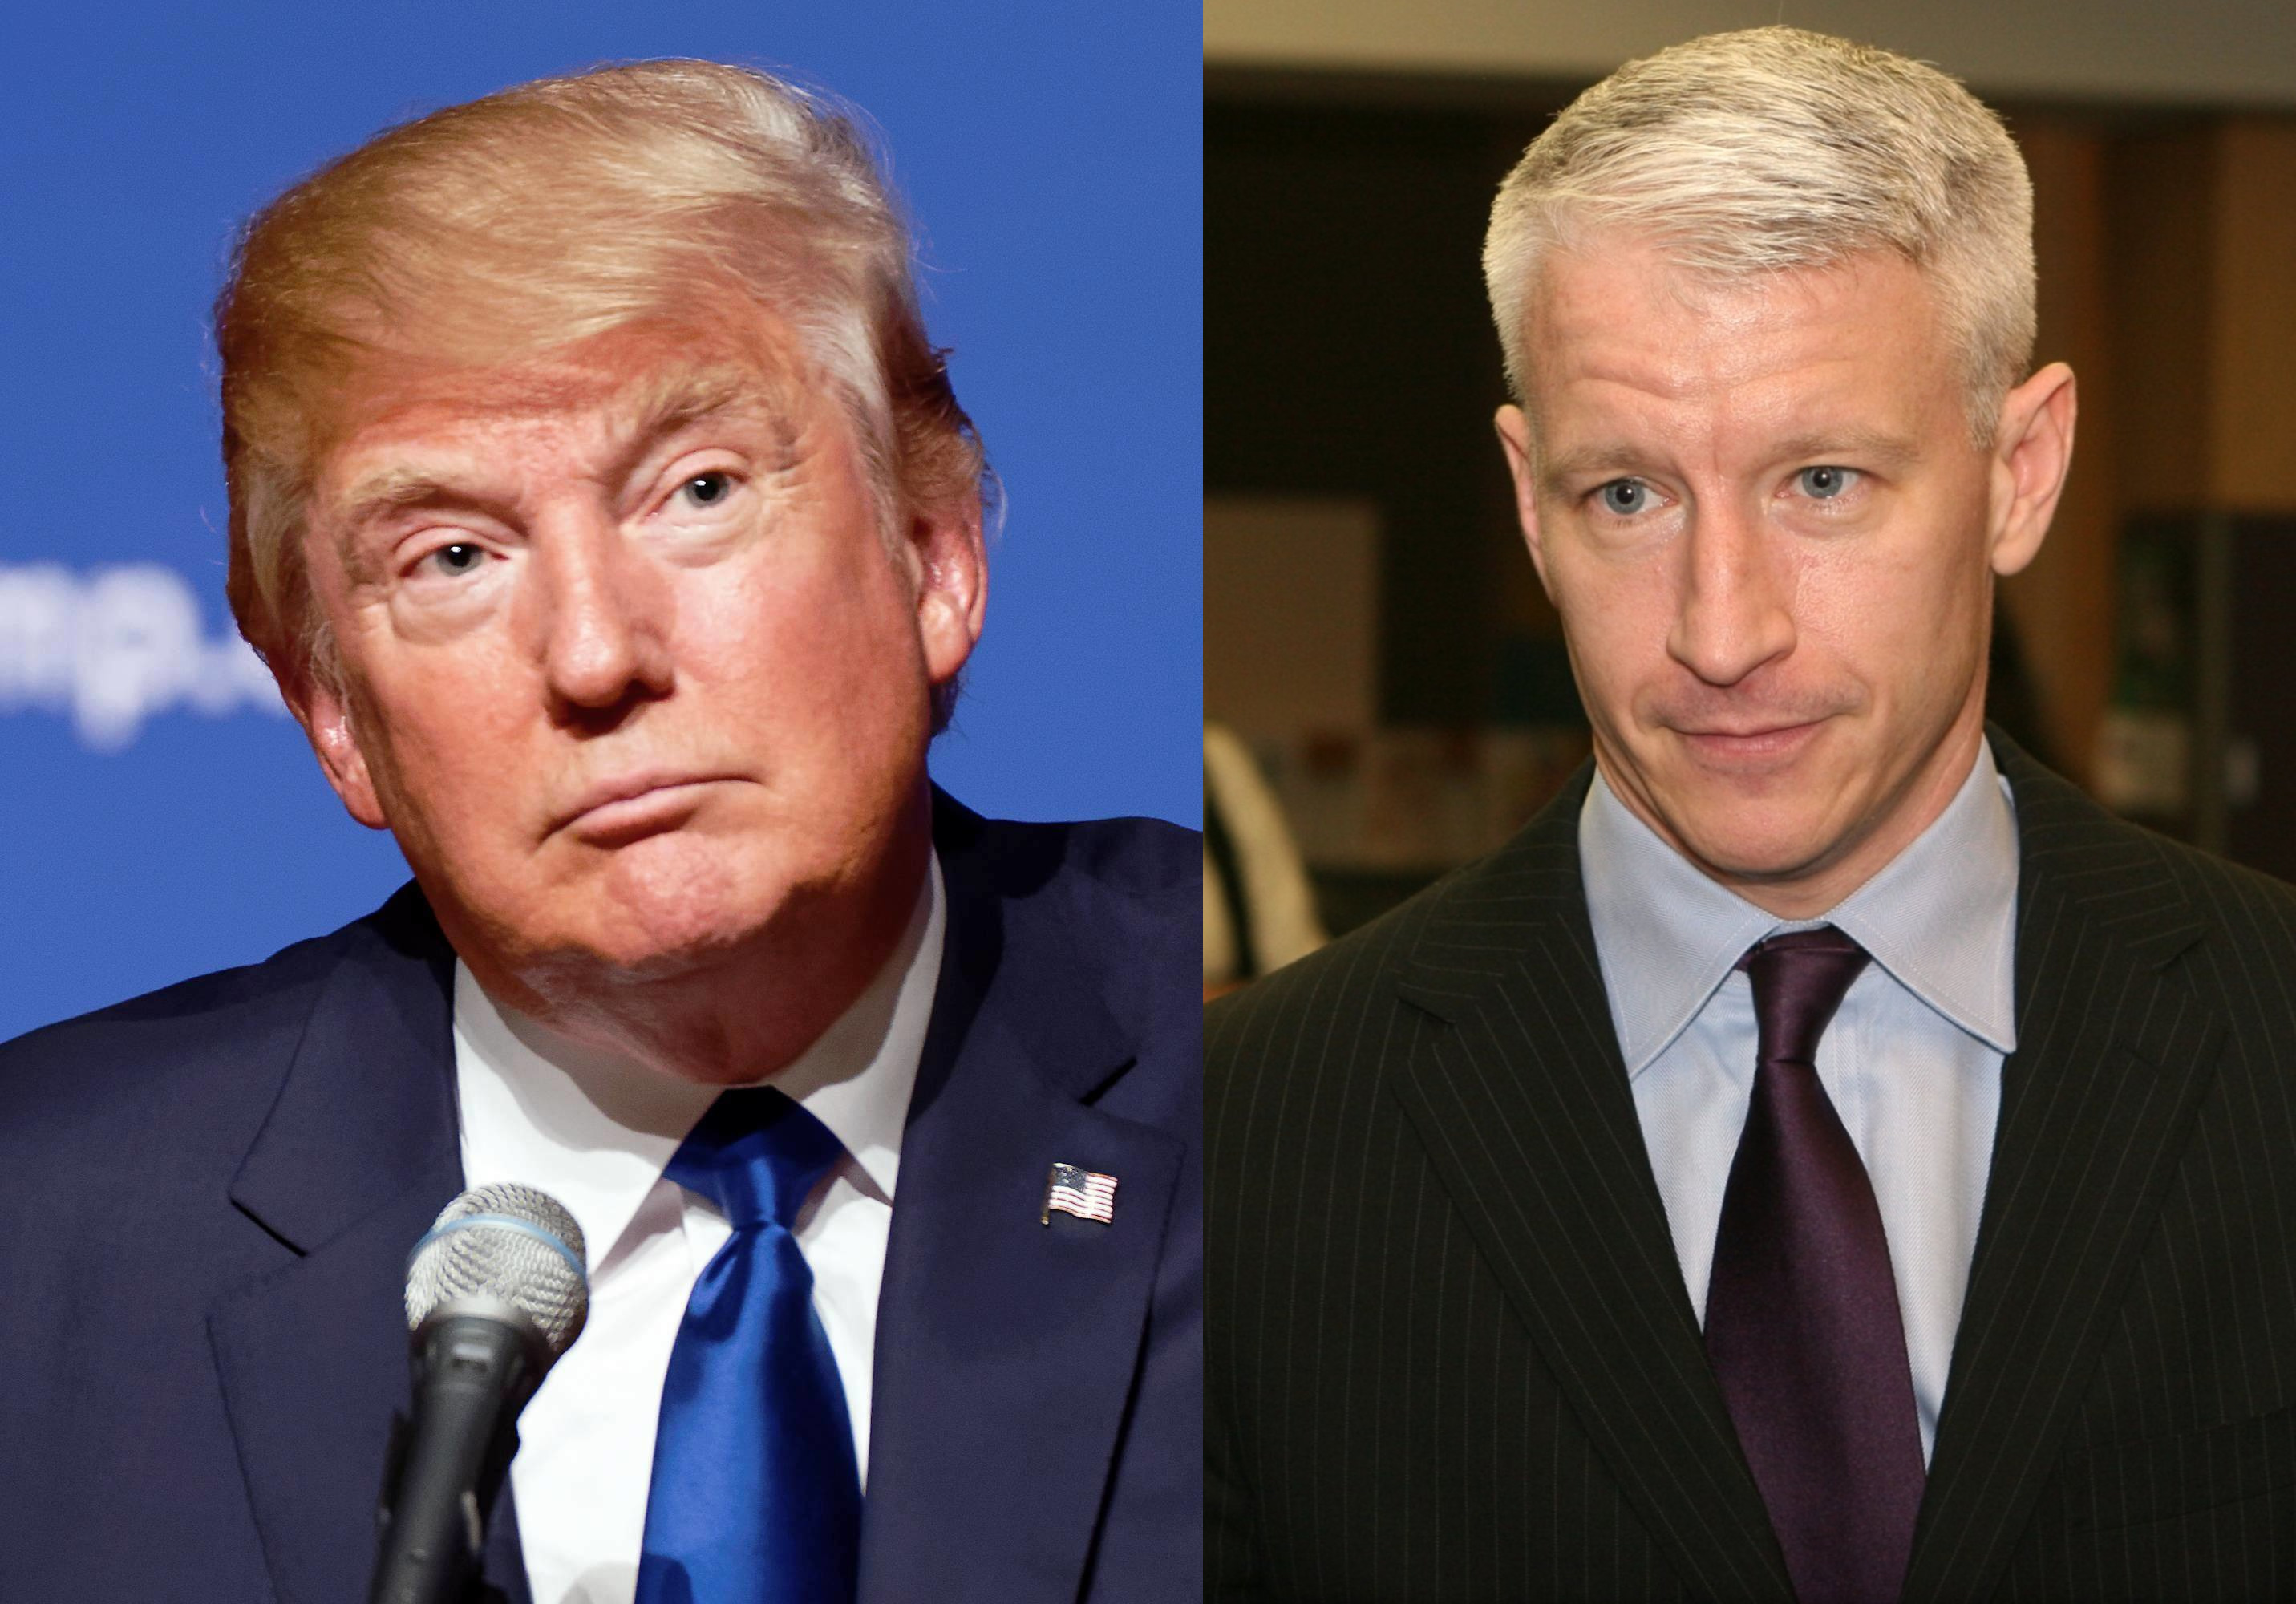 Anderson Cooper Rips Trump On Twitter